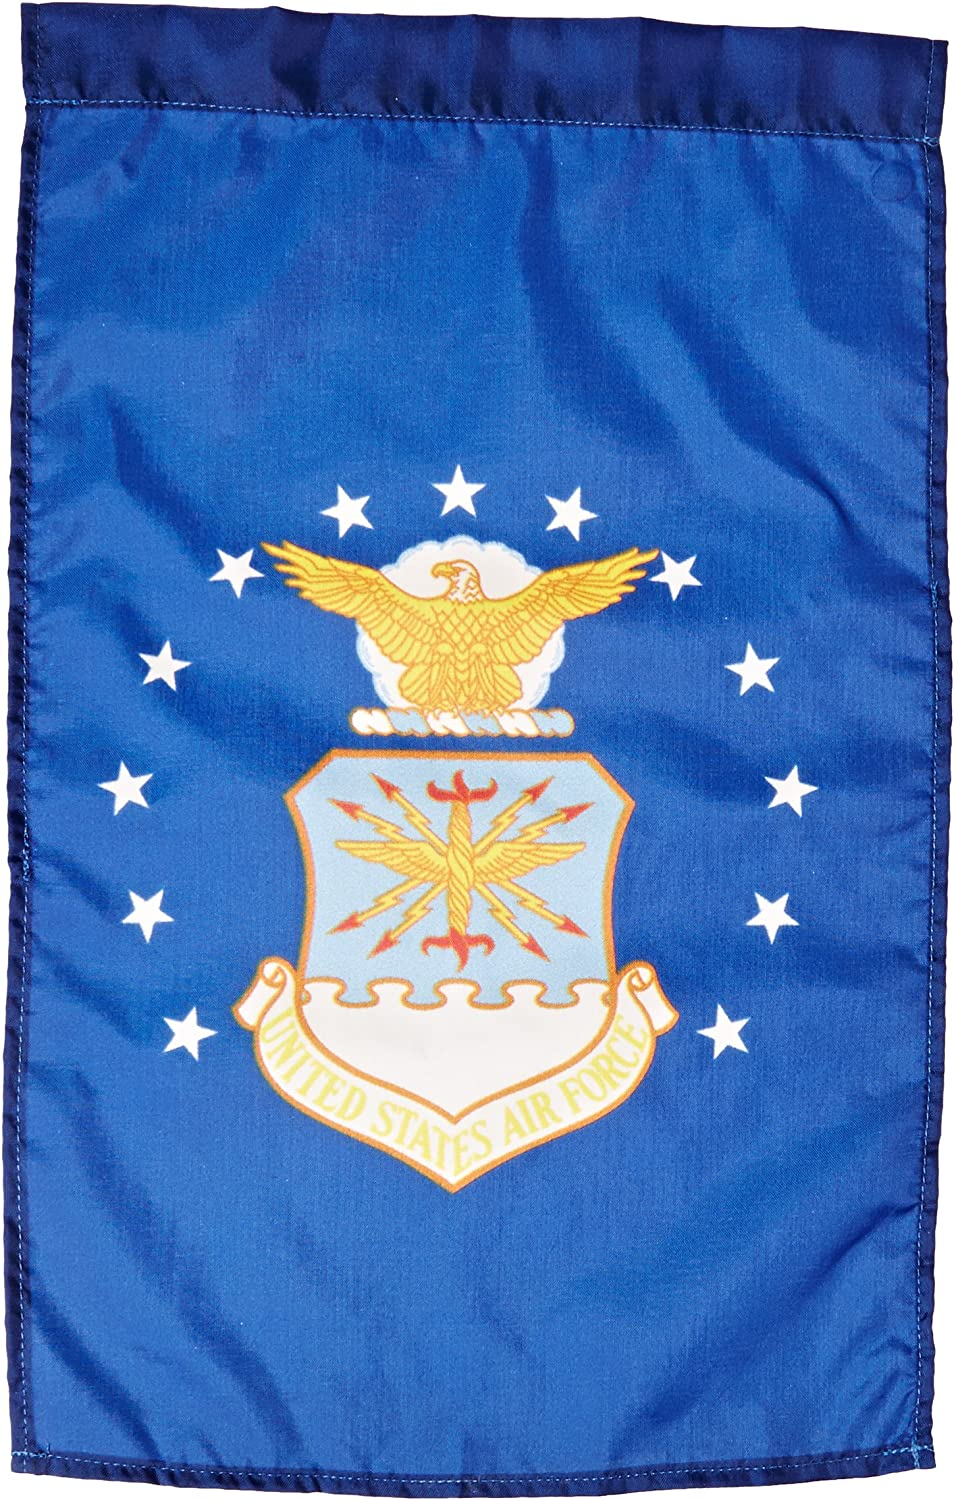 Valley Forge Flag Made in America 12